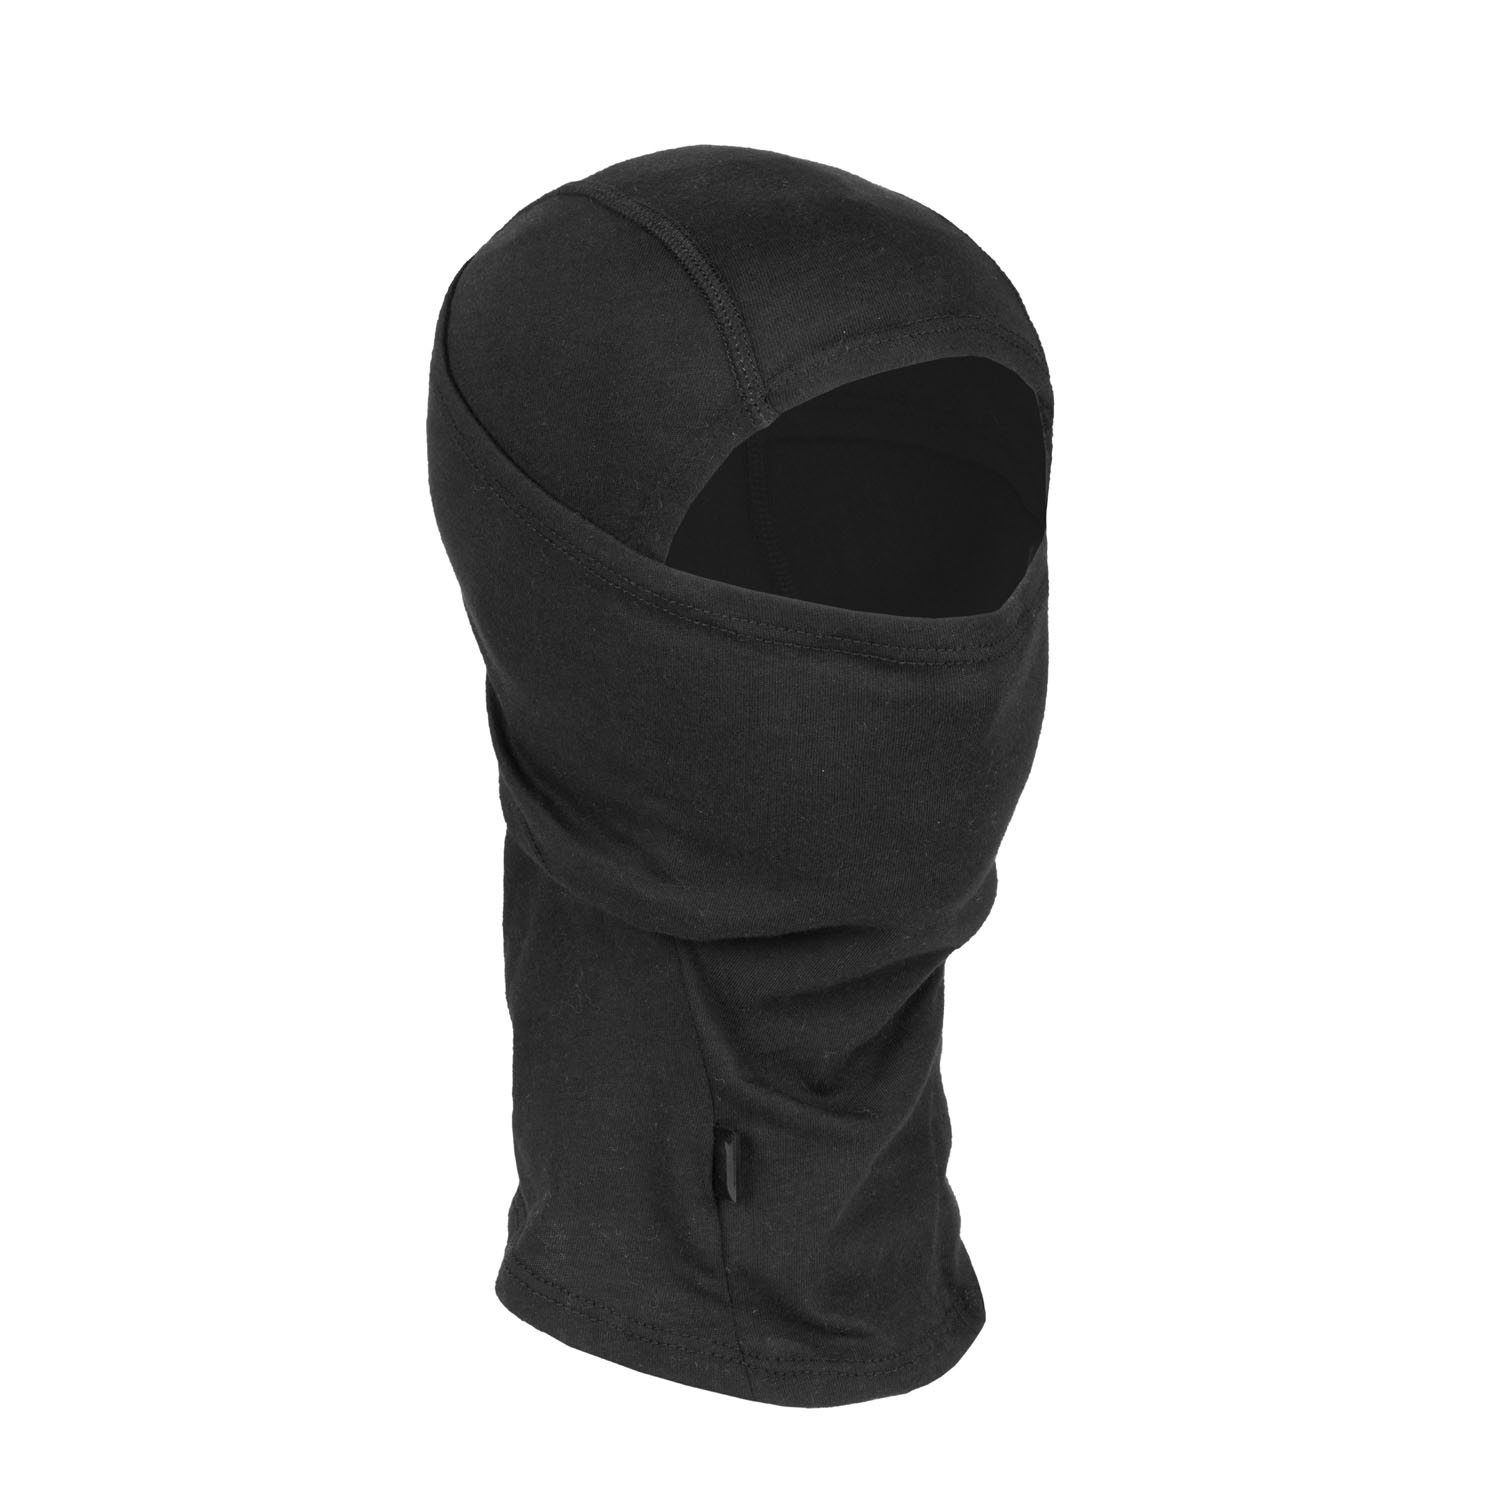 Fireproof tactical mask